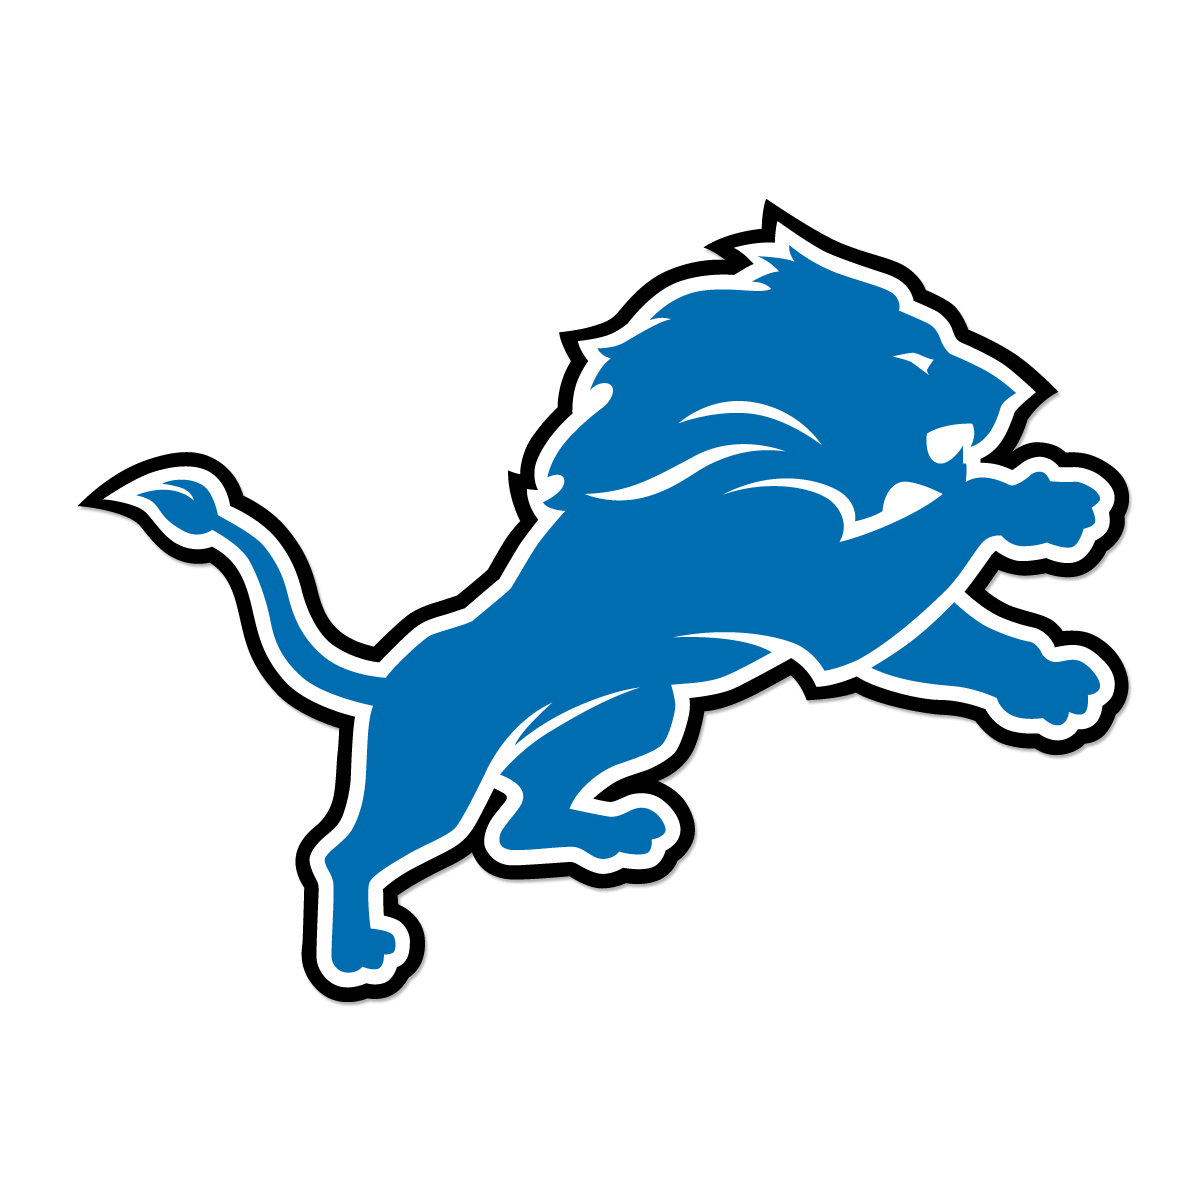 Have the Detroit Lions Given Up on Their Season Already?